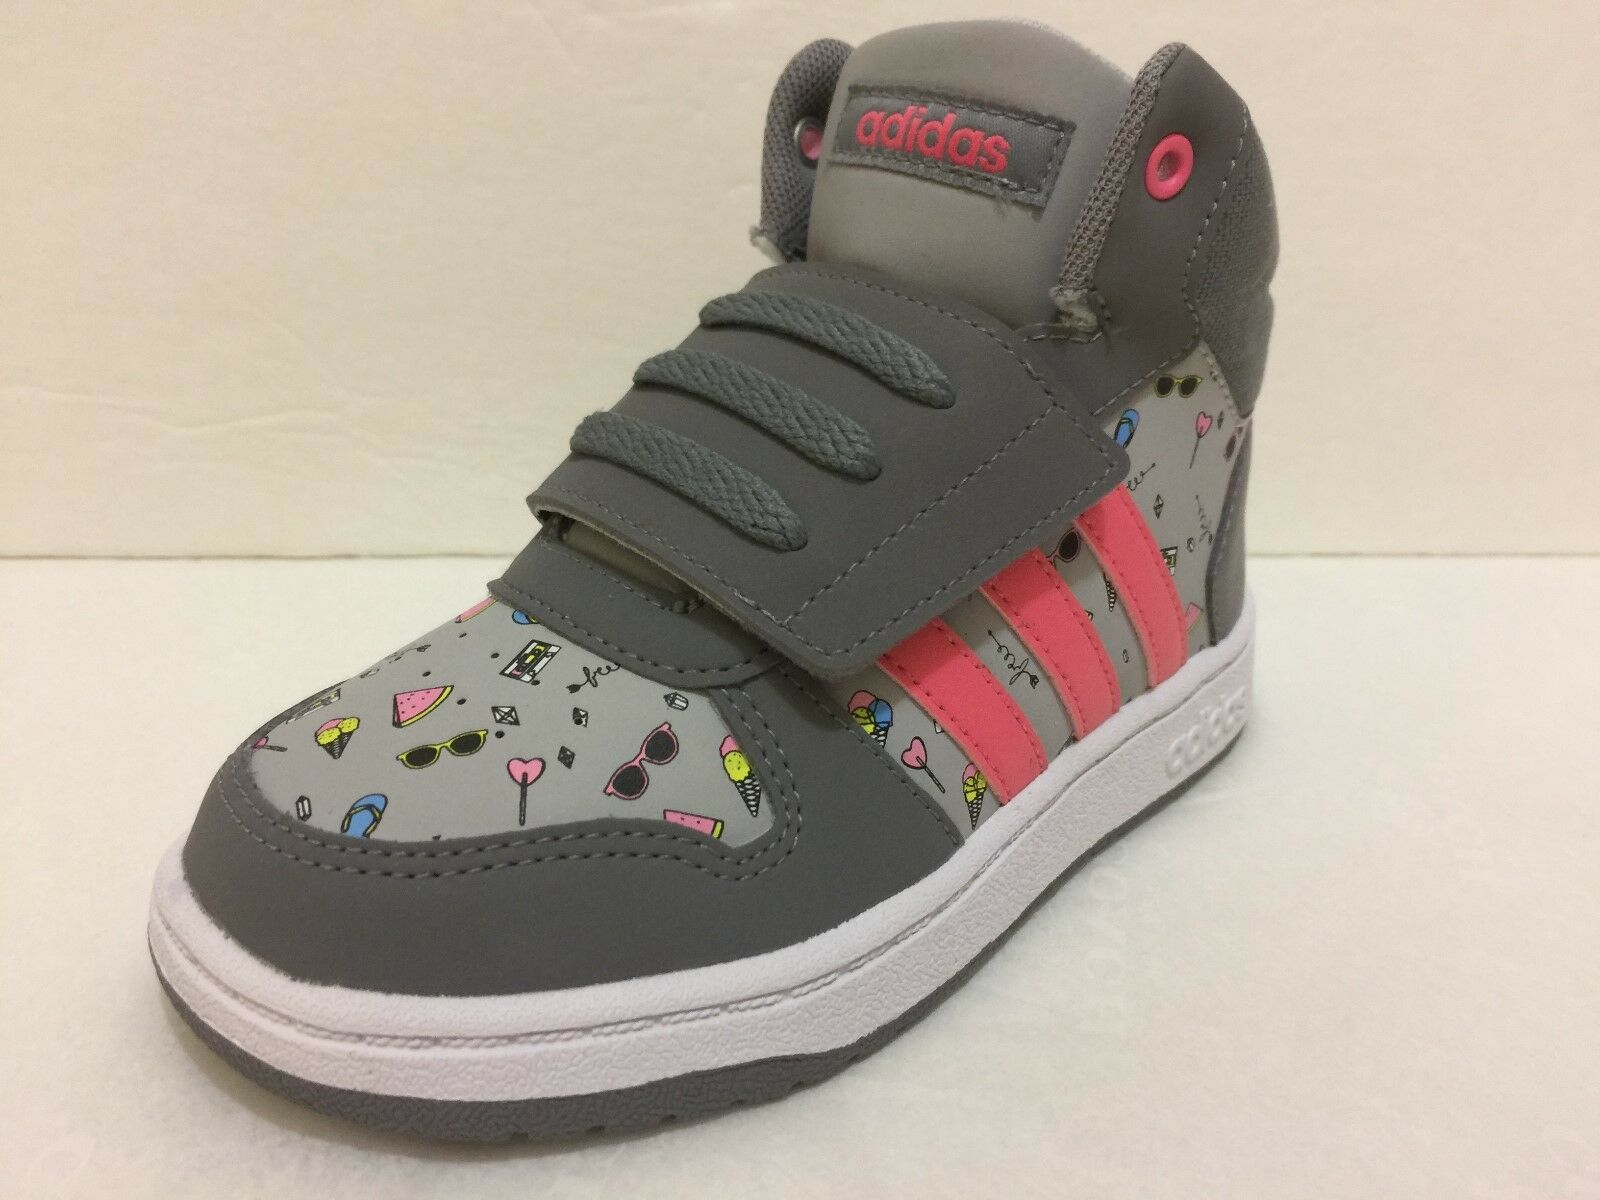 New Girls Adidas Hoops MID 2.01 Basketball Shoes Toddler Size 10K DB1939